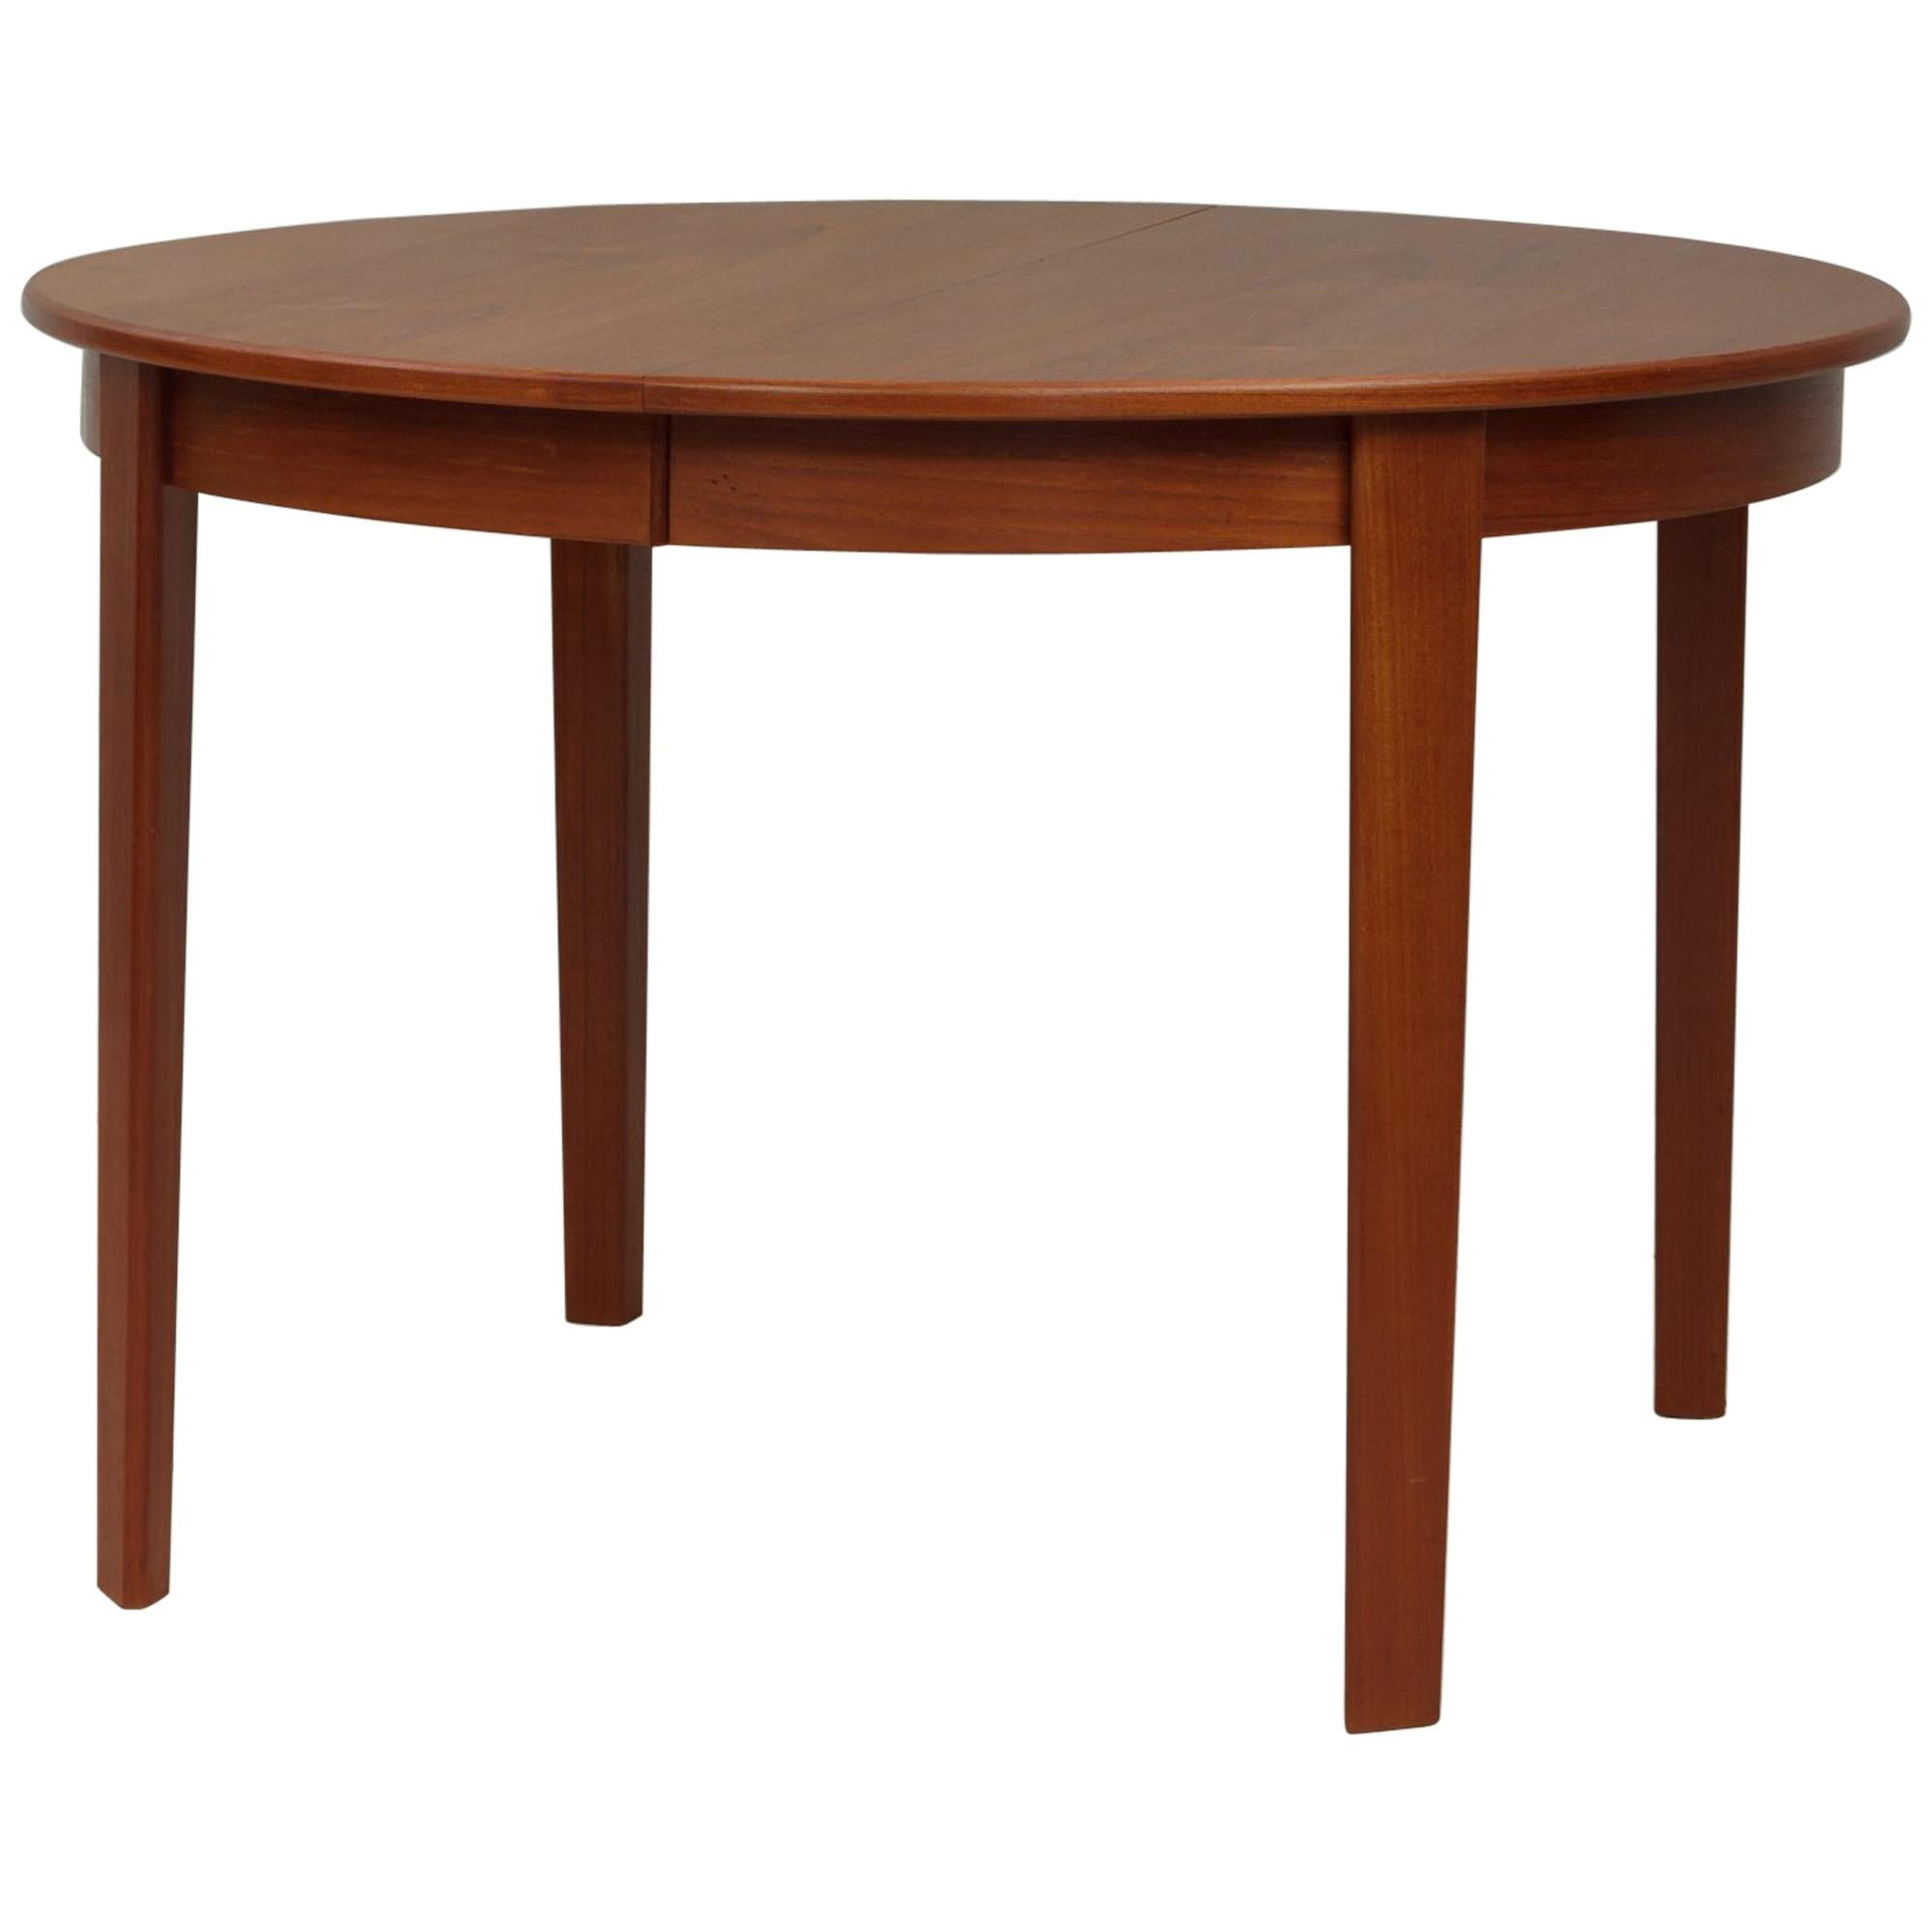 Charmant Danish Midcentury Round Teak Extension Table For Sale